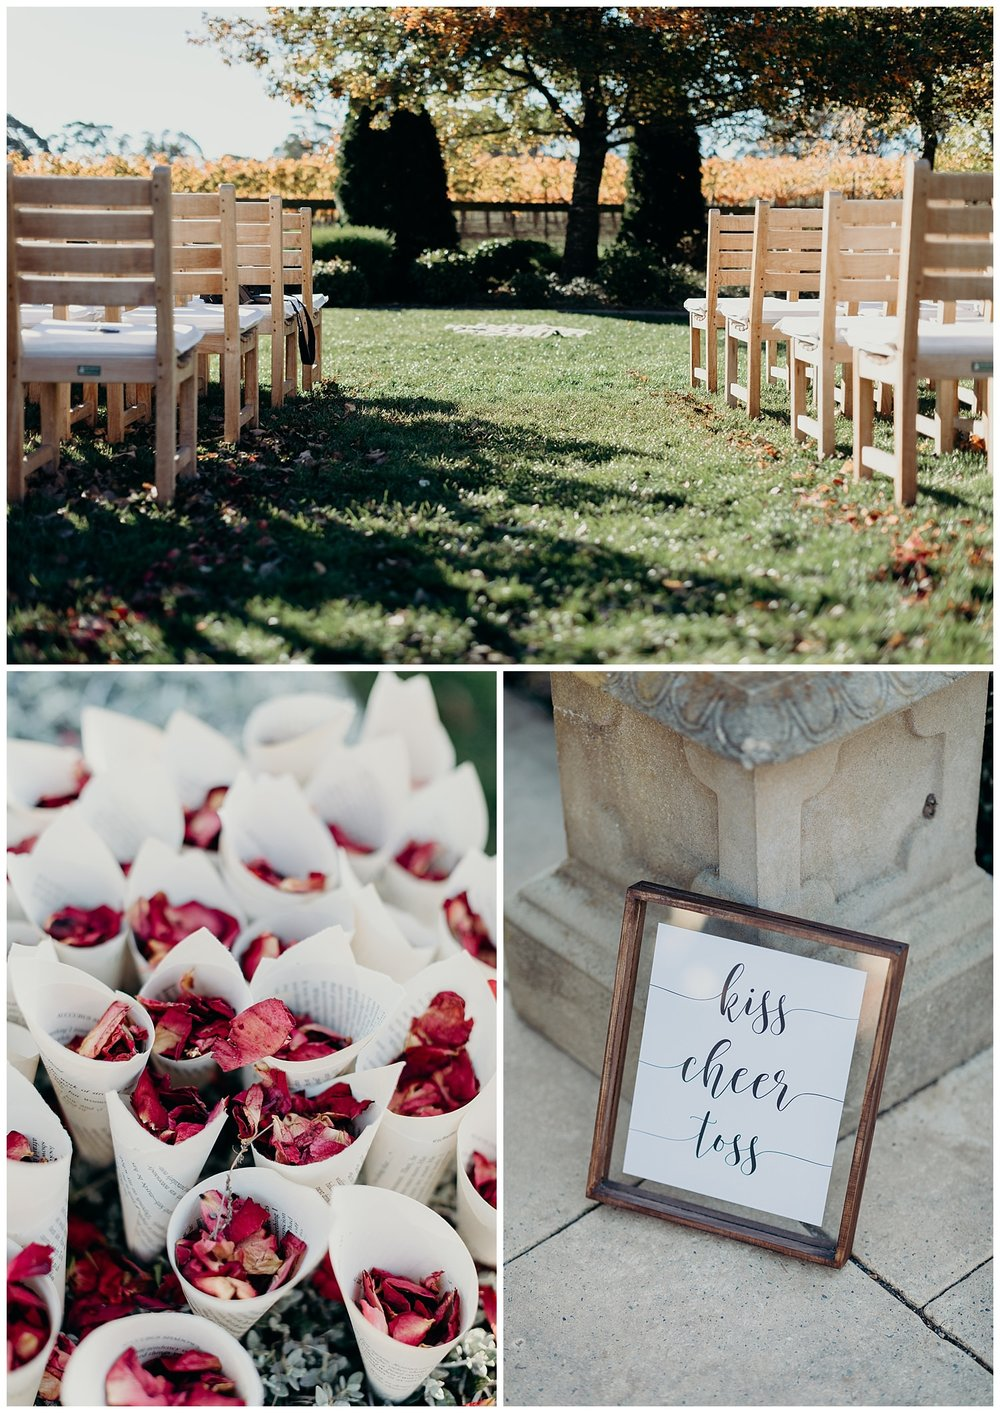 Bowral Southern Highlands Autumn Wedding - Centennial Vineyards wedding details